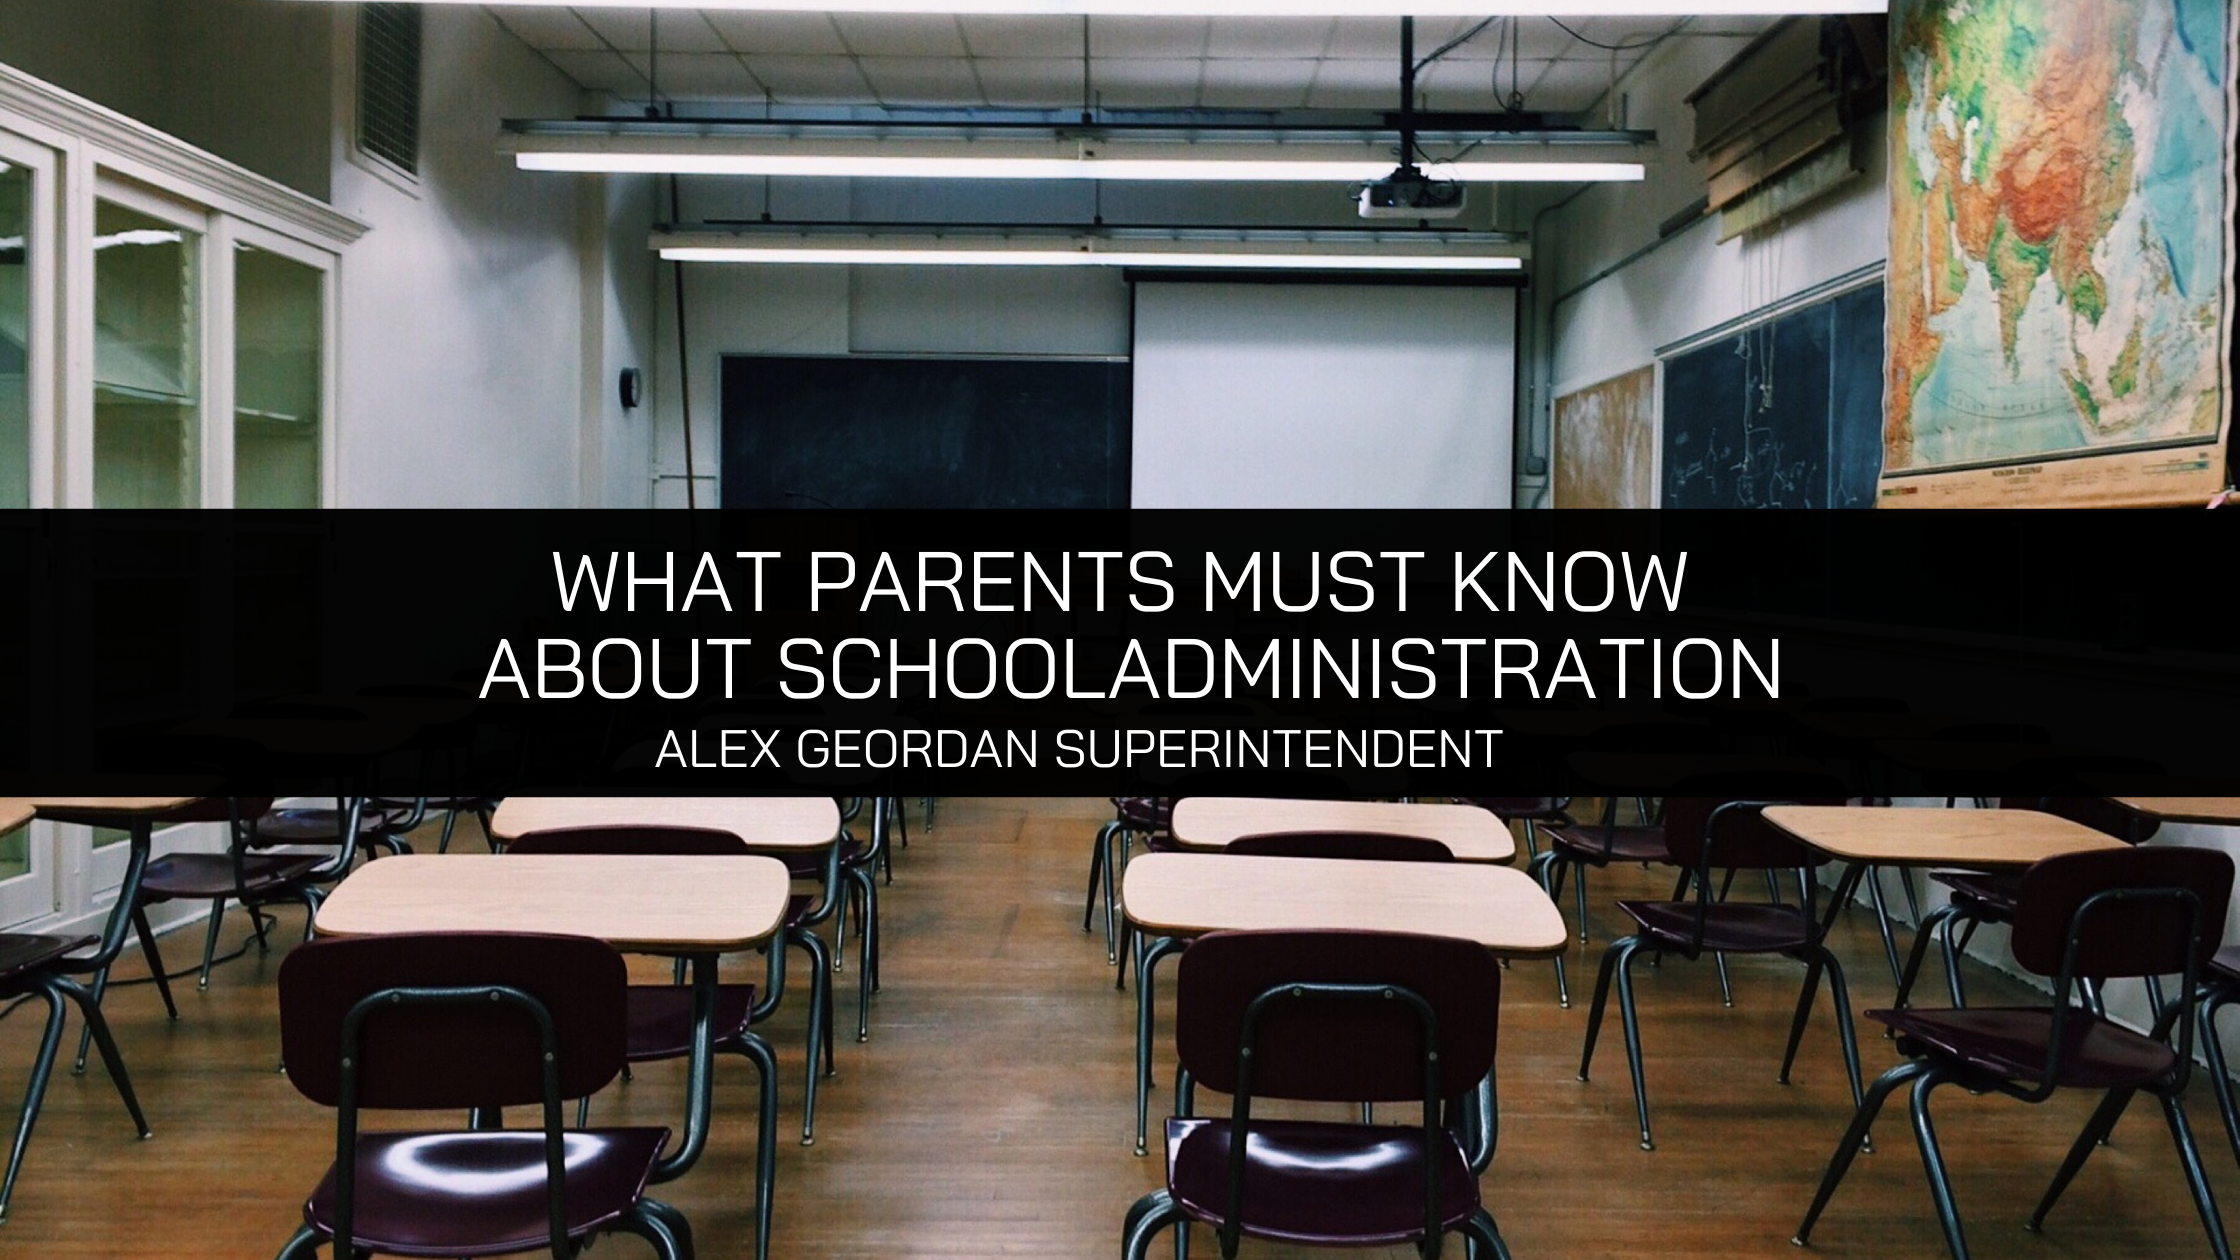 Alex Geordan Superintendent Addresses What Parents Must Know About School Administration